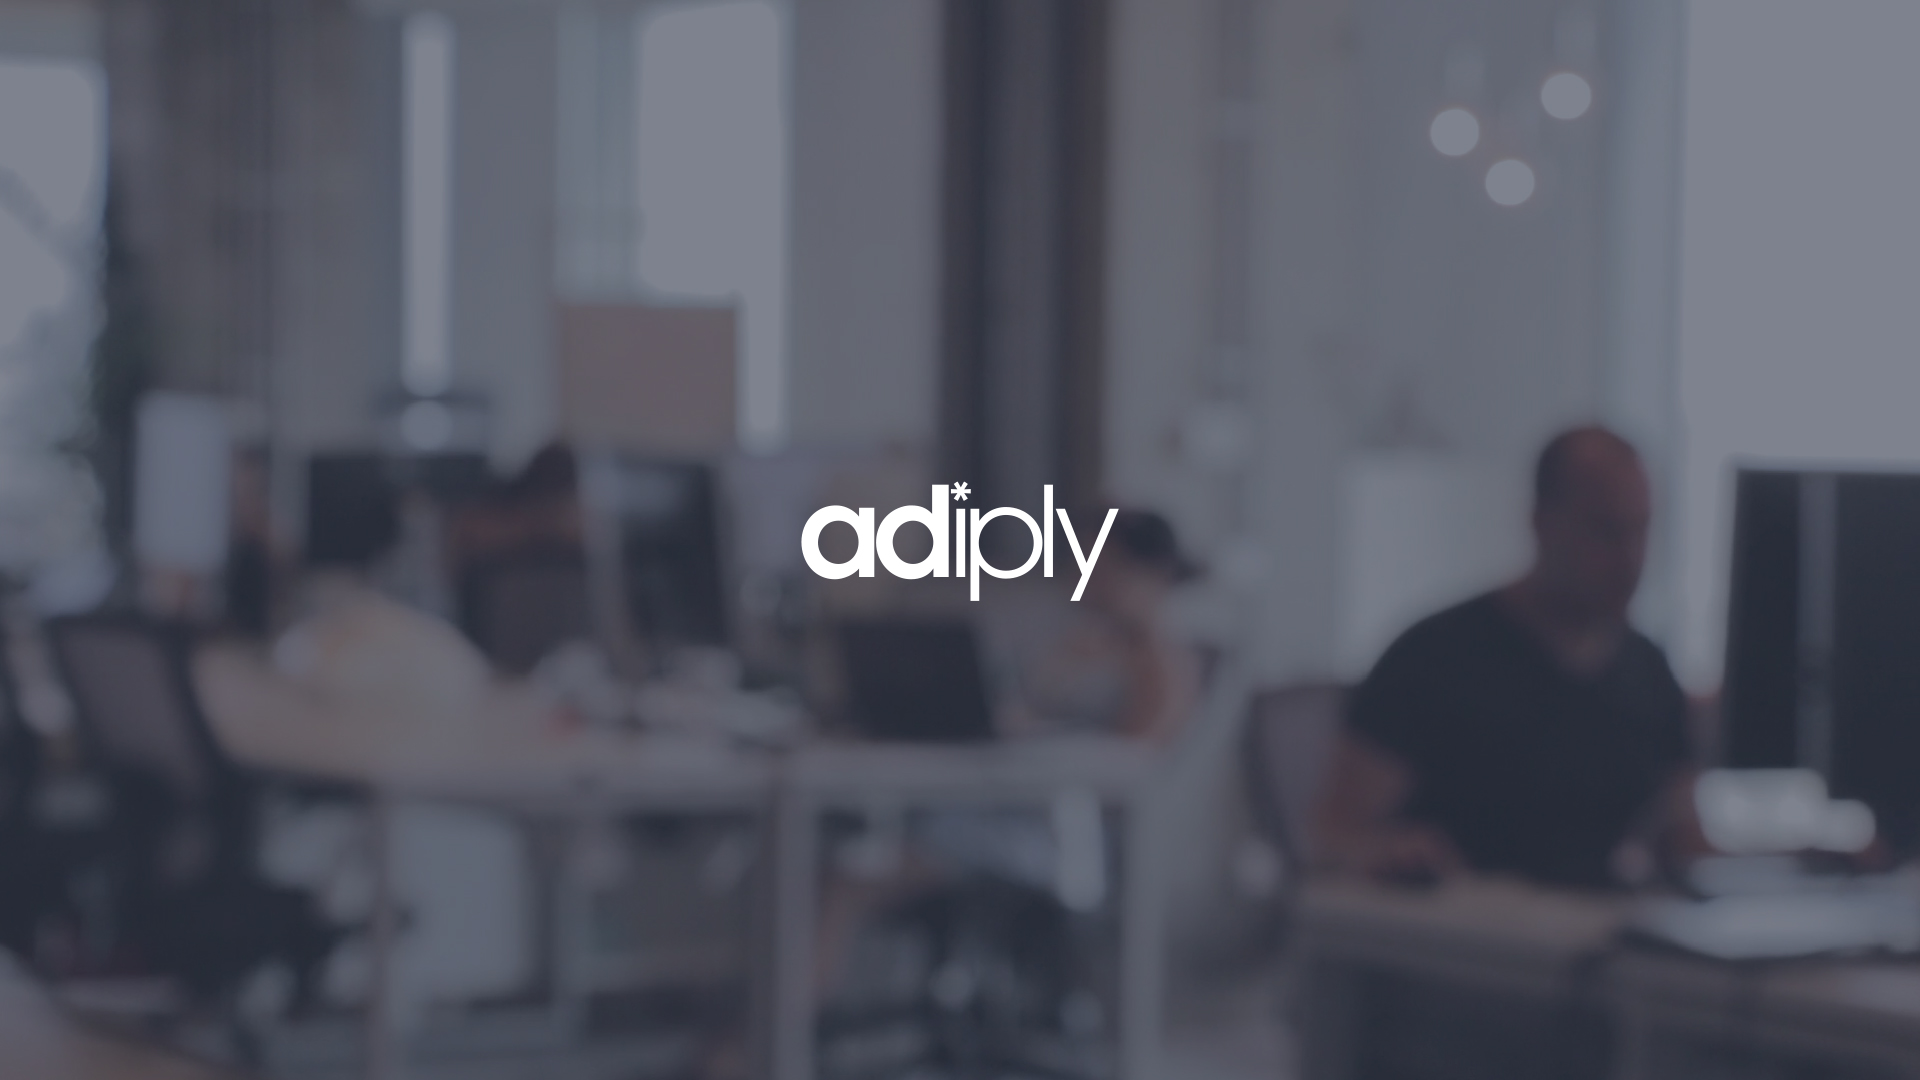 adiply Website Design Preview